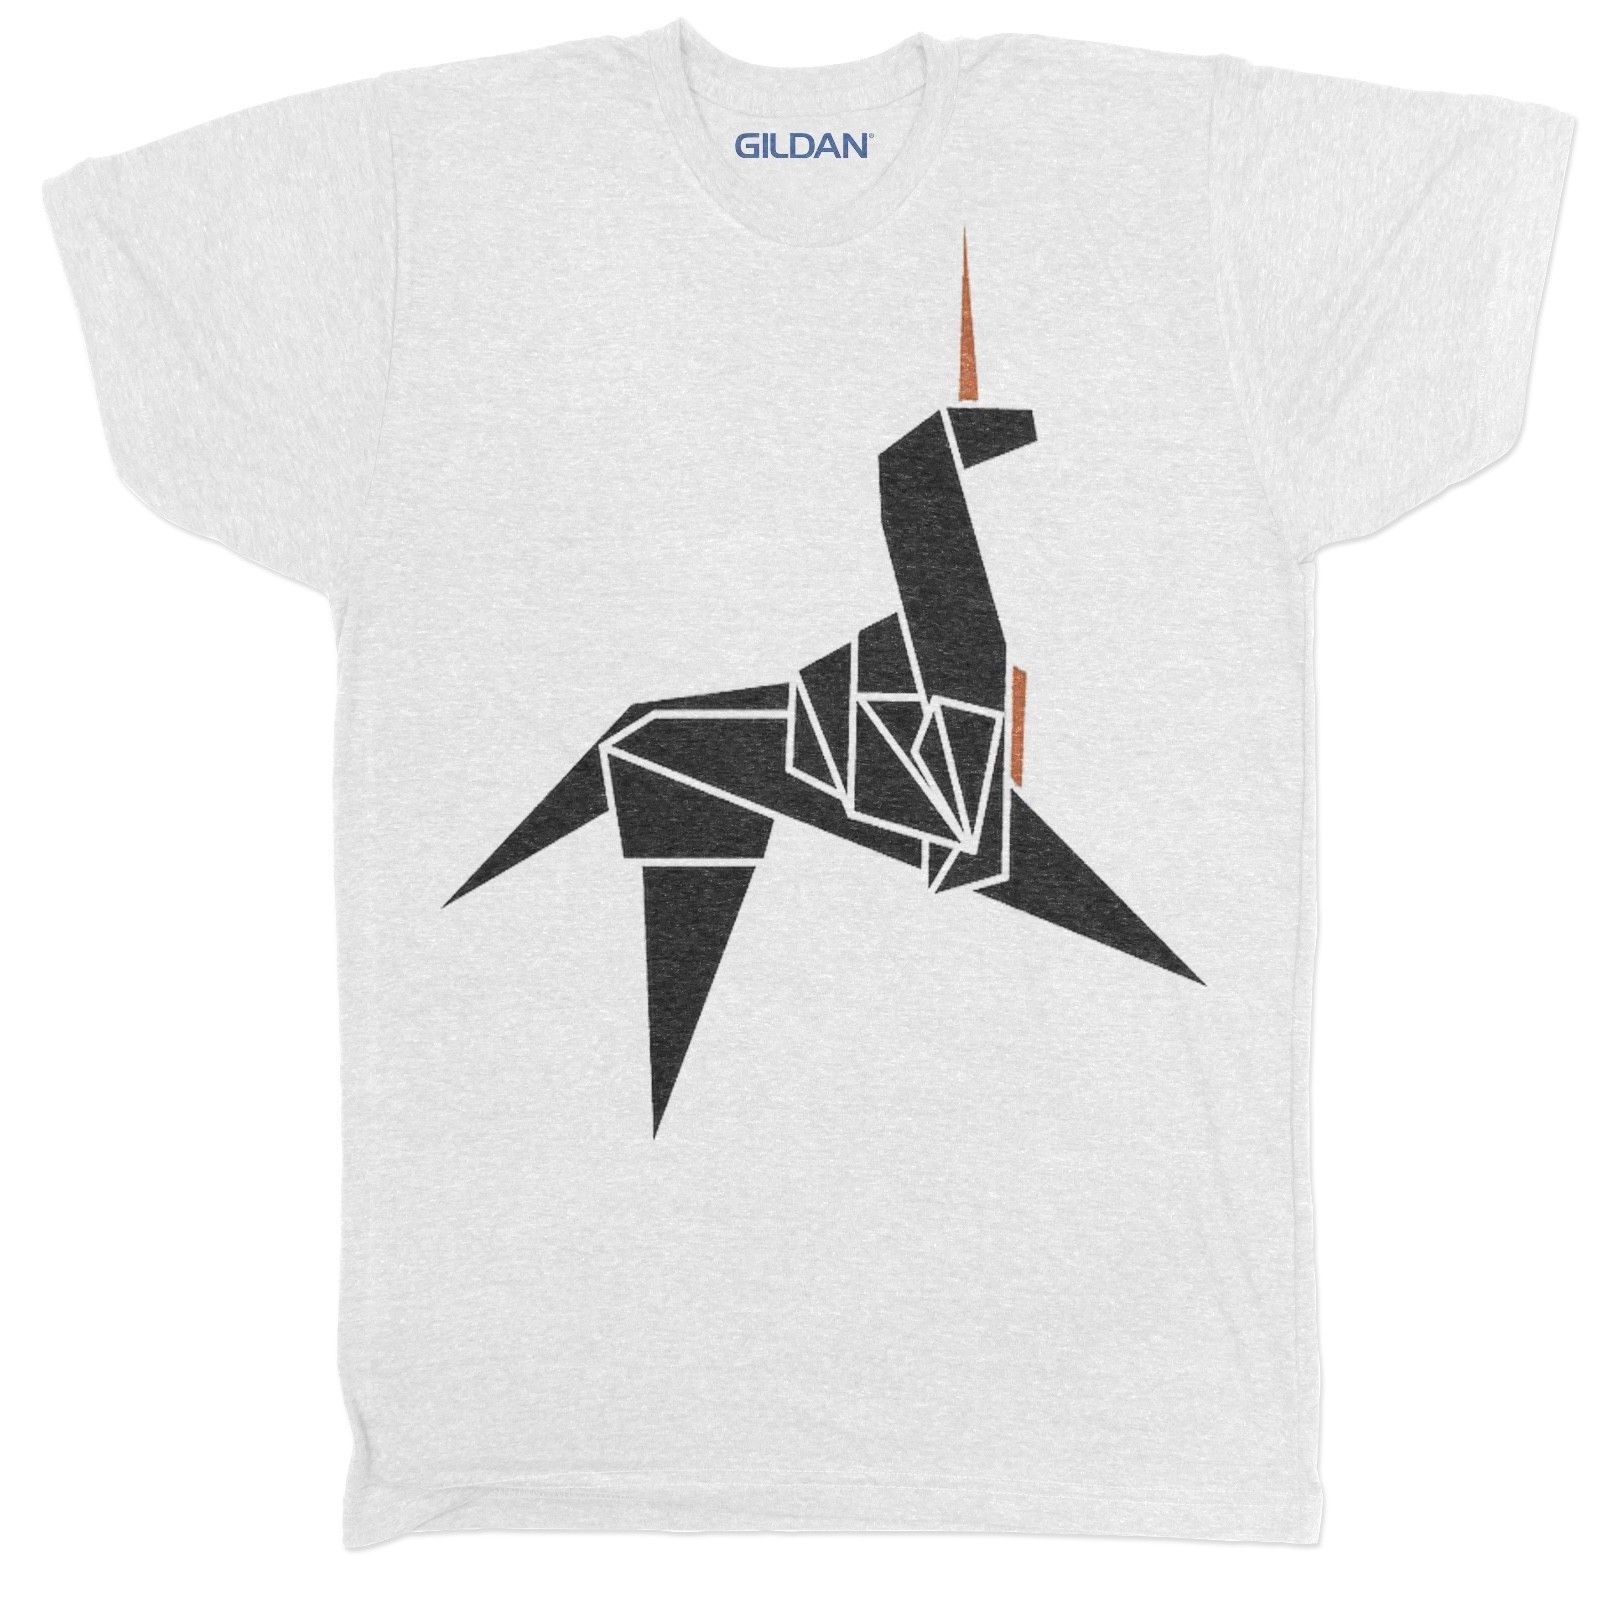 BLADE RUNNER ORIGAMI UNICORN T SHIRT SUPER HERO SCI FI 80S RETRO MOVIE FILM